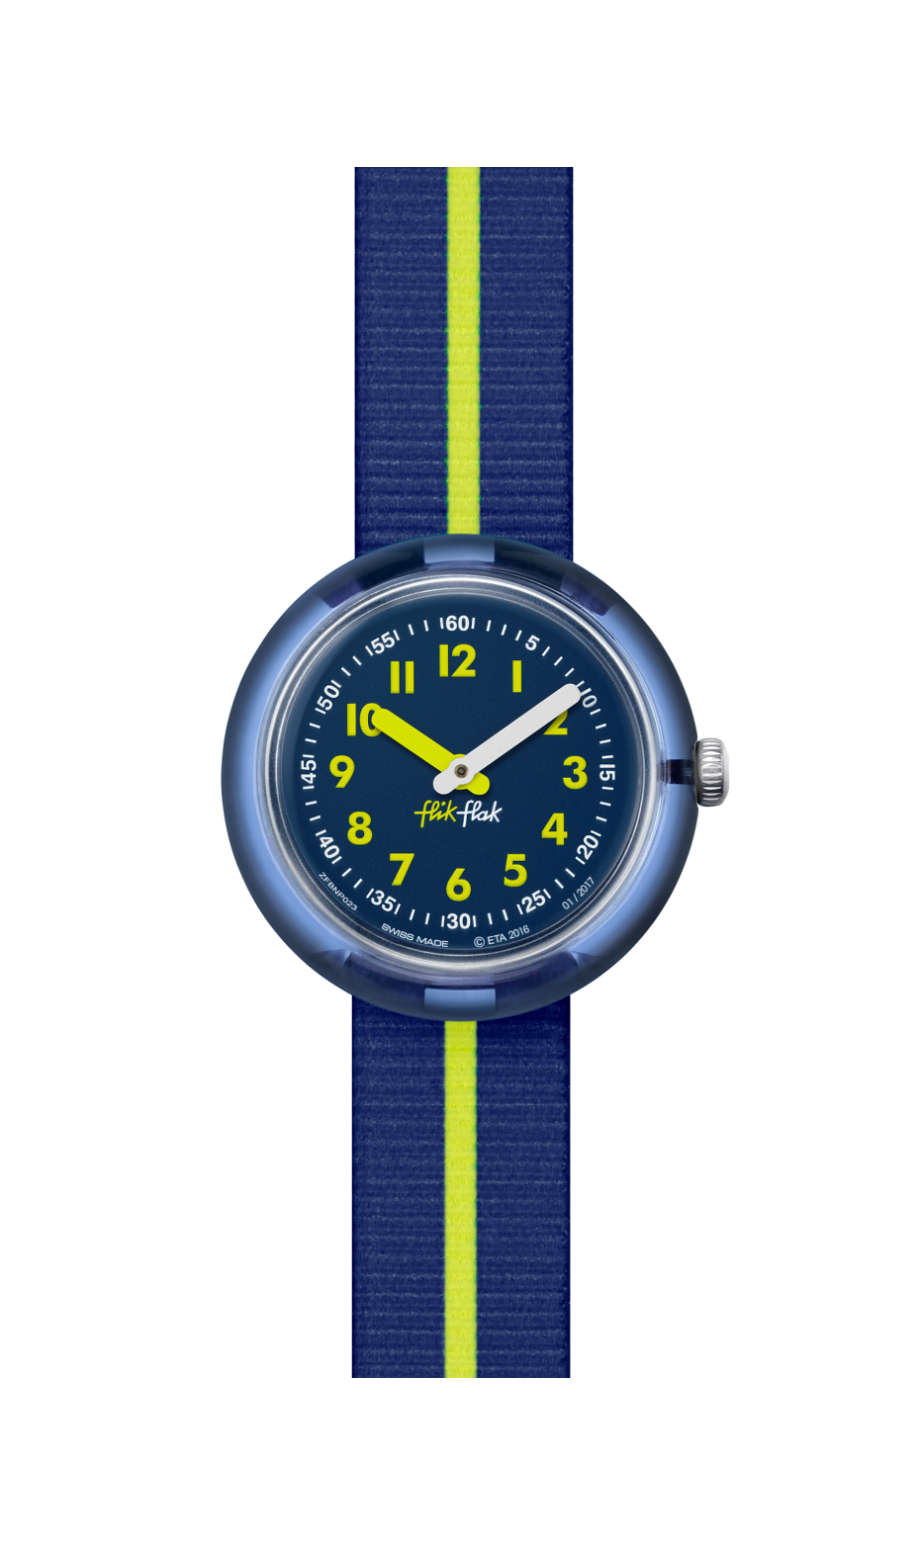 Swatch - YELLOW BAND - 1